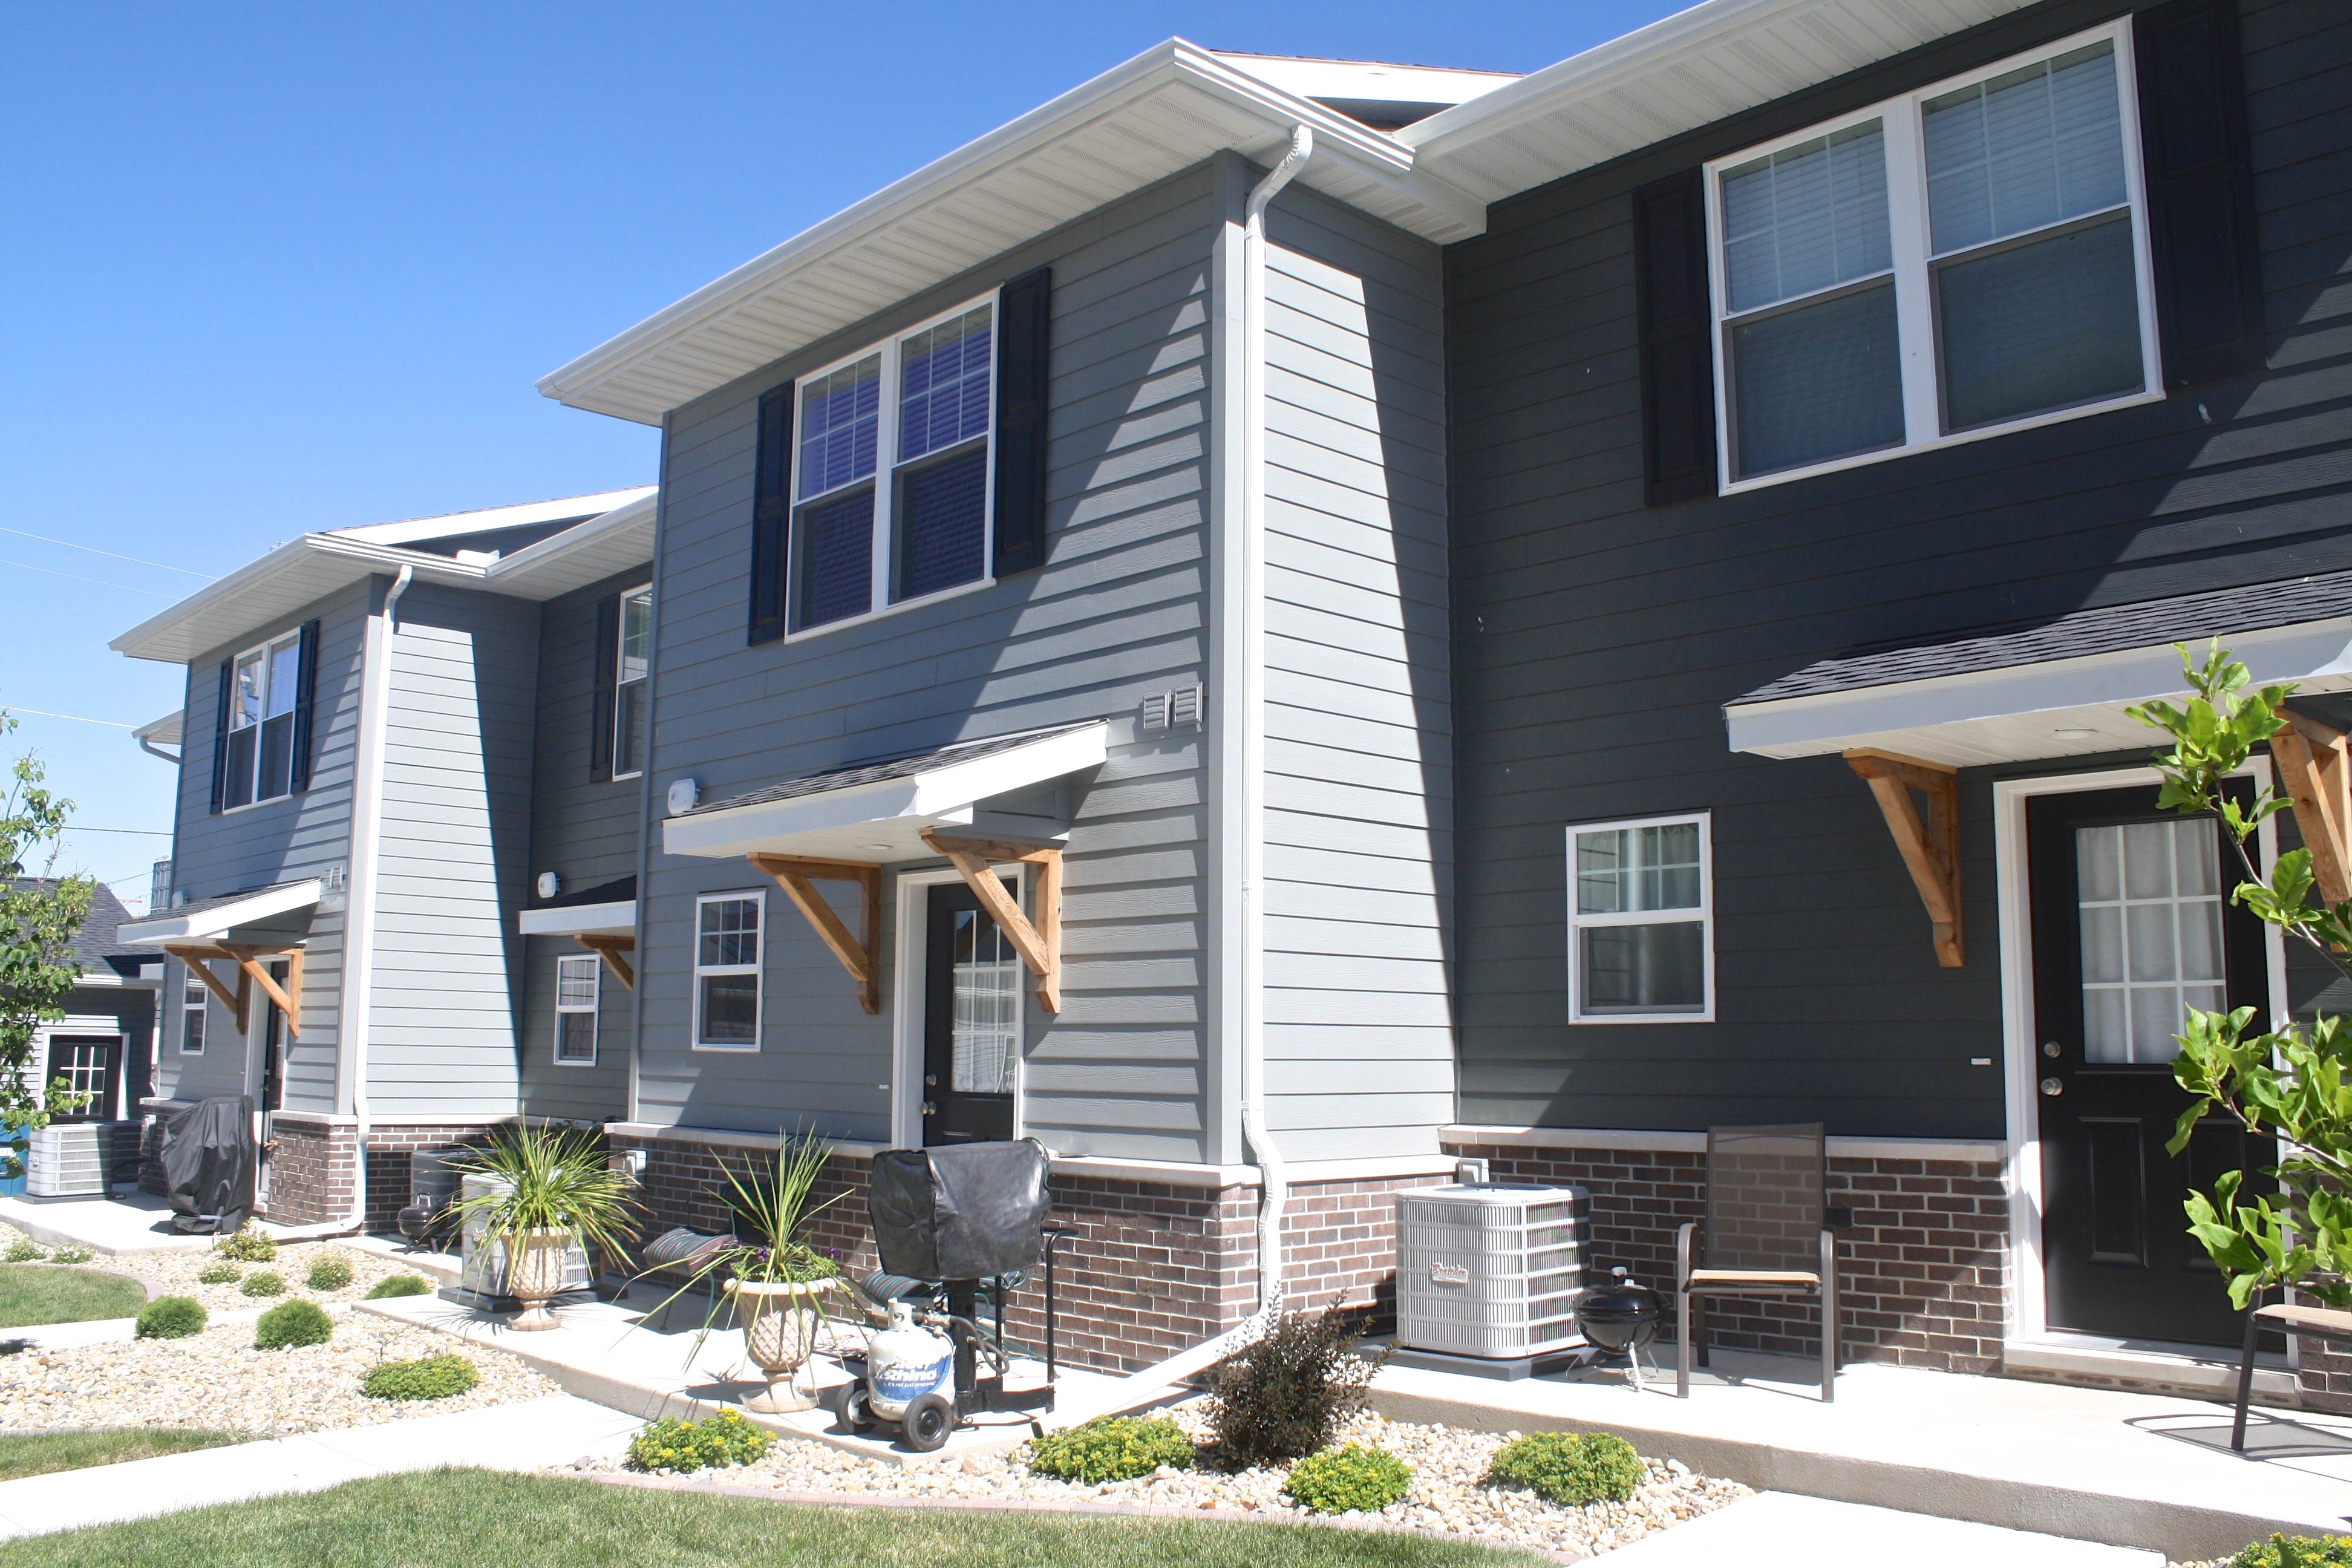 Relatively james-hardie-fiber-cement-lap-siding-in-iron-gray-and-slate-gray  DA98